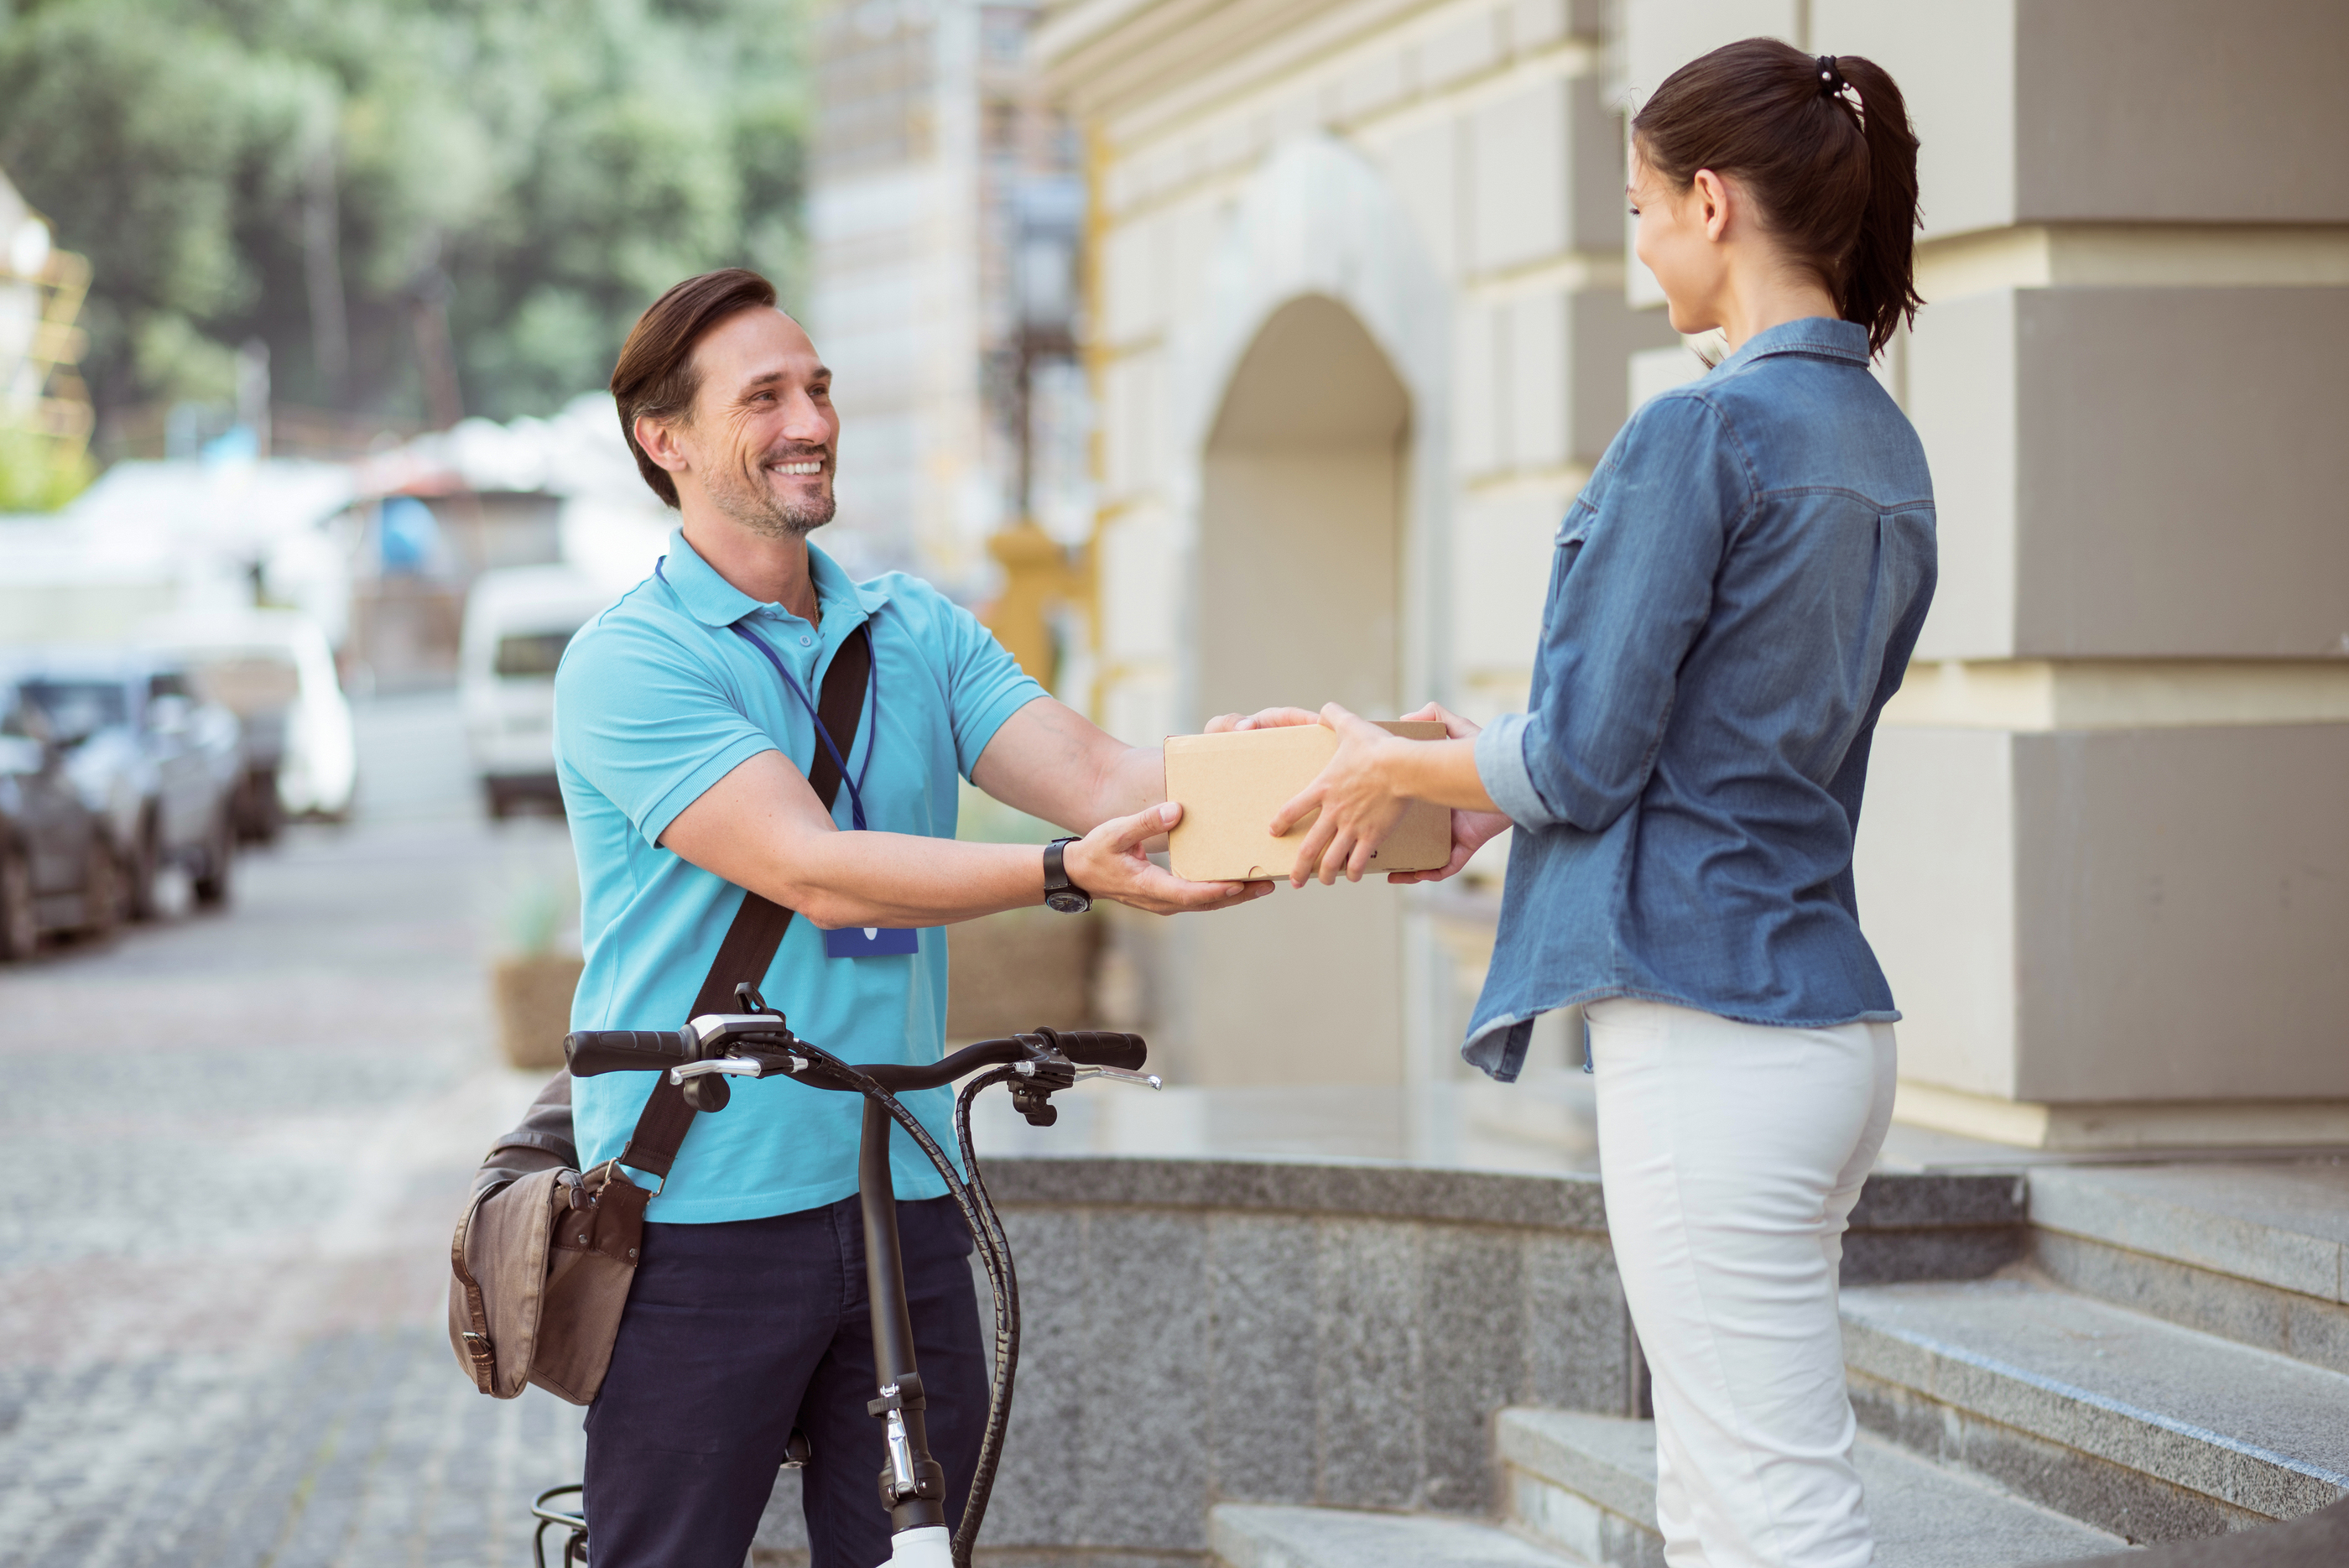 HOW TO START A PACKAGE DELIVERY SERVICE LIKE UBER?